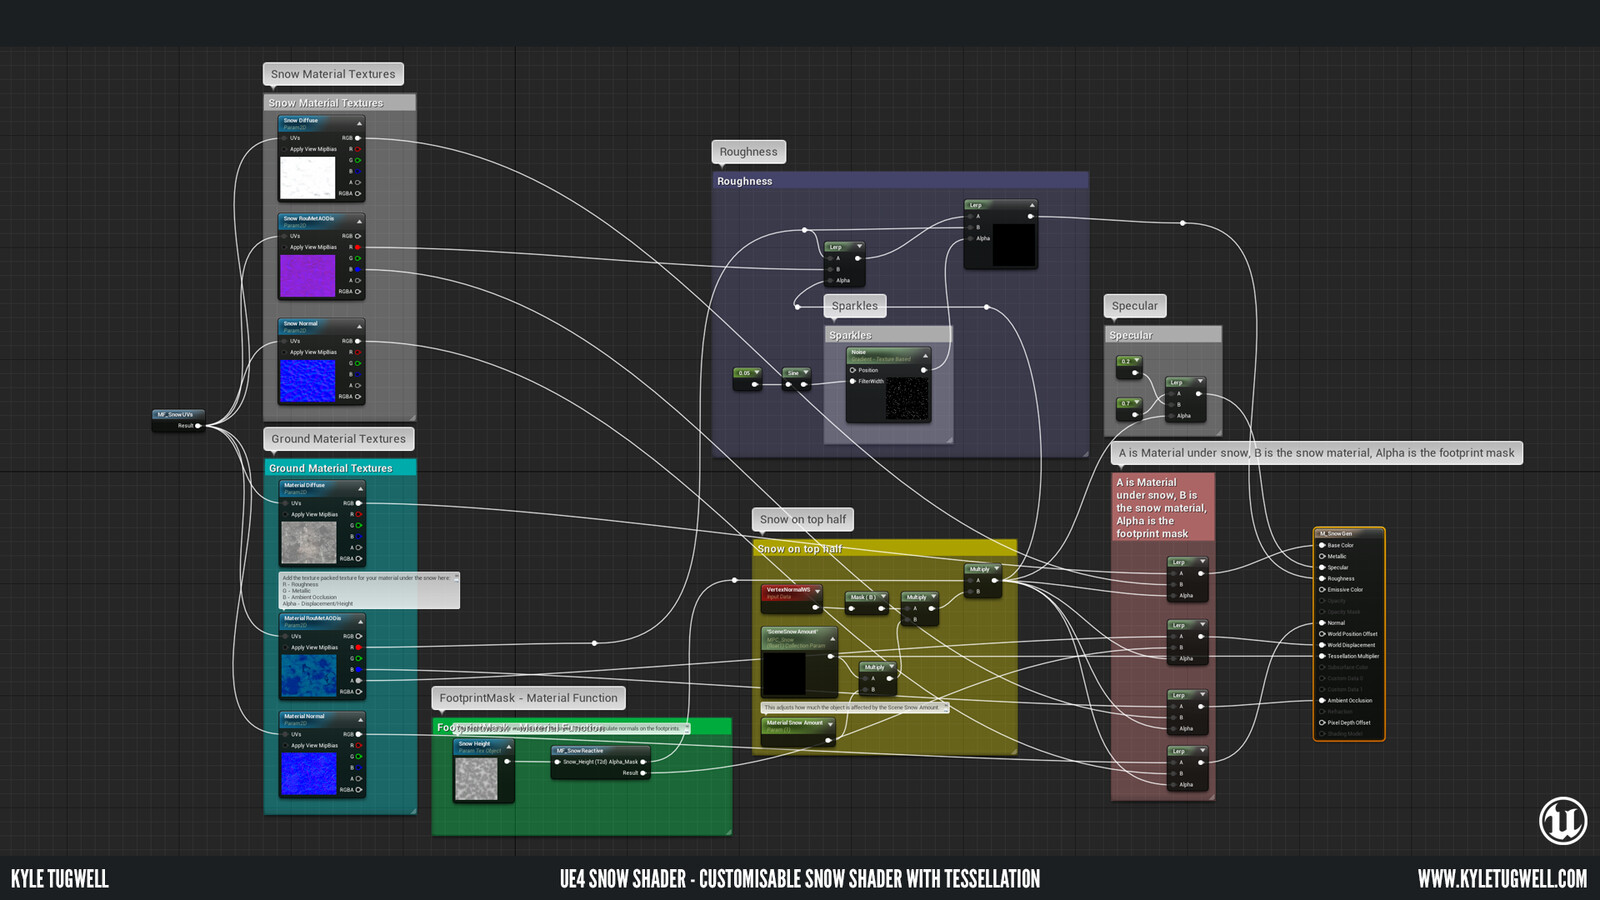 This node graph has parameters allowing a user to customise which materials are used for the masking within the snow shader. These can be instanced and used for multiple materials and assets within the scene.